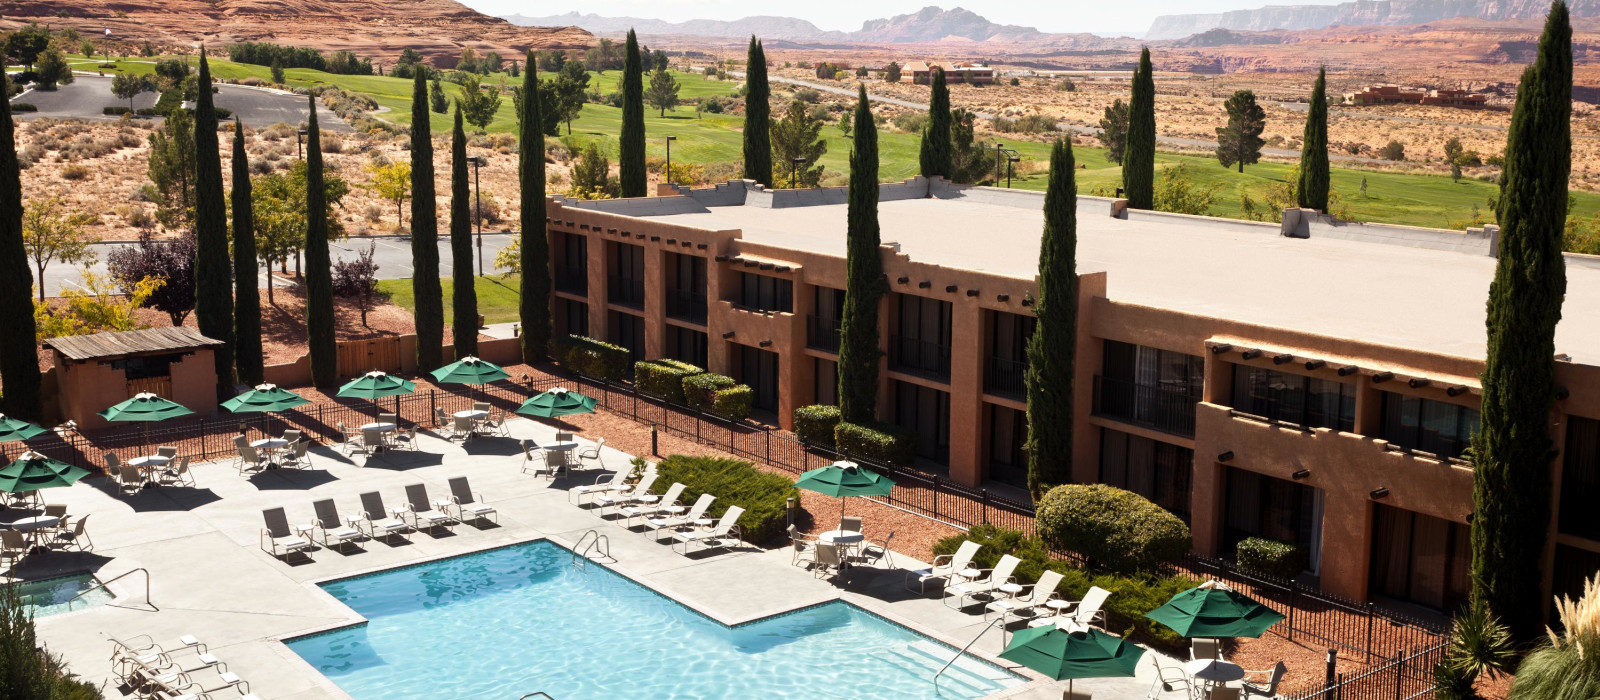 Hotel Courtyard Page by Marriott at Lake Powell USA